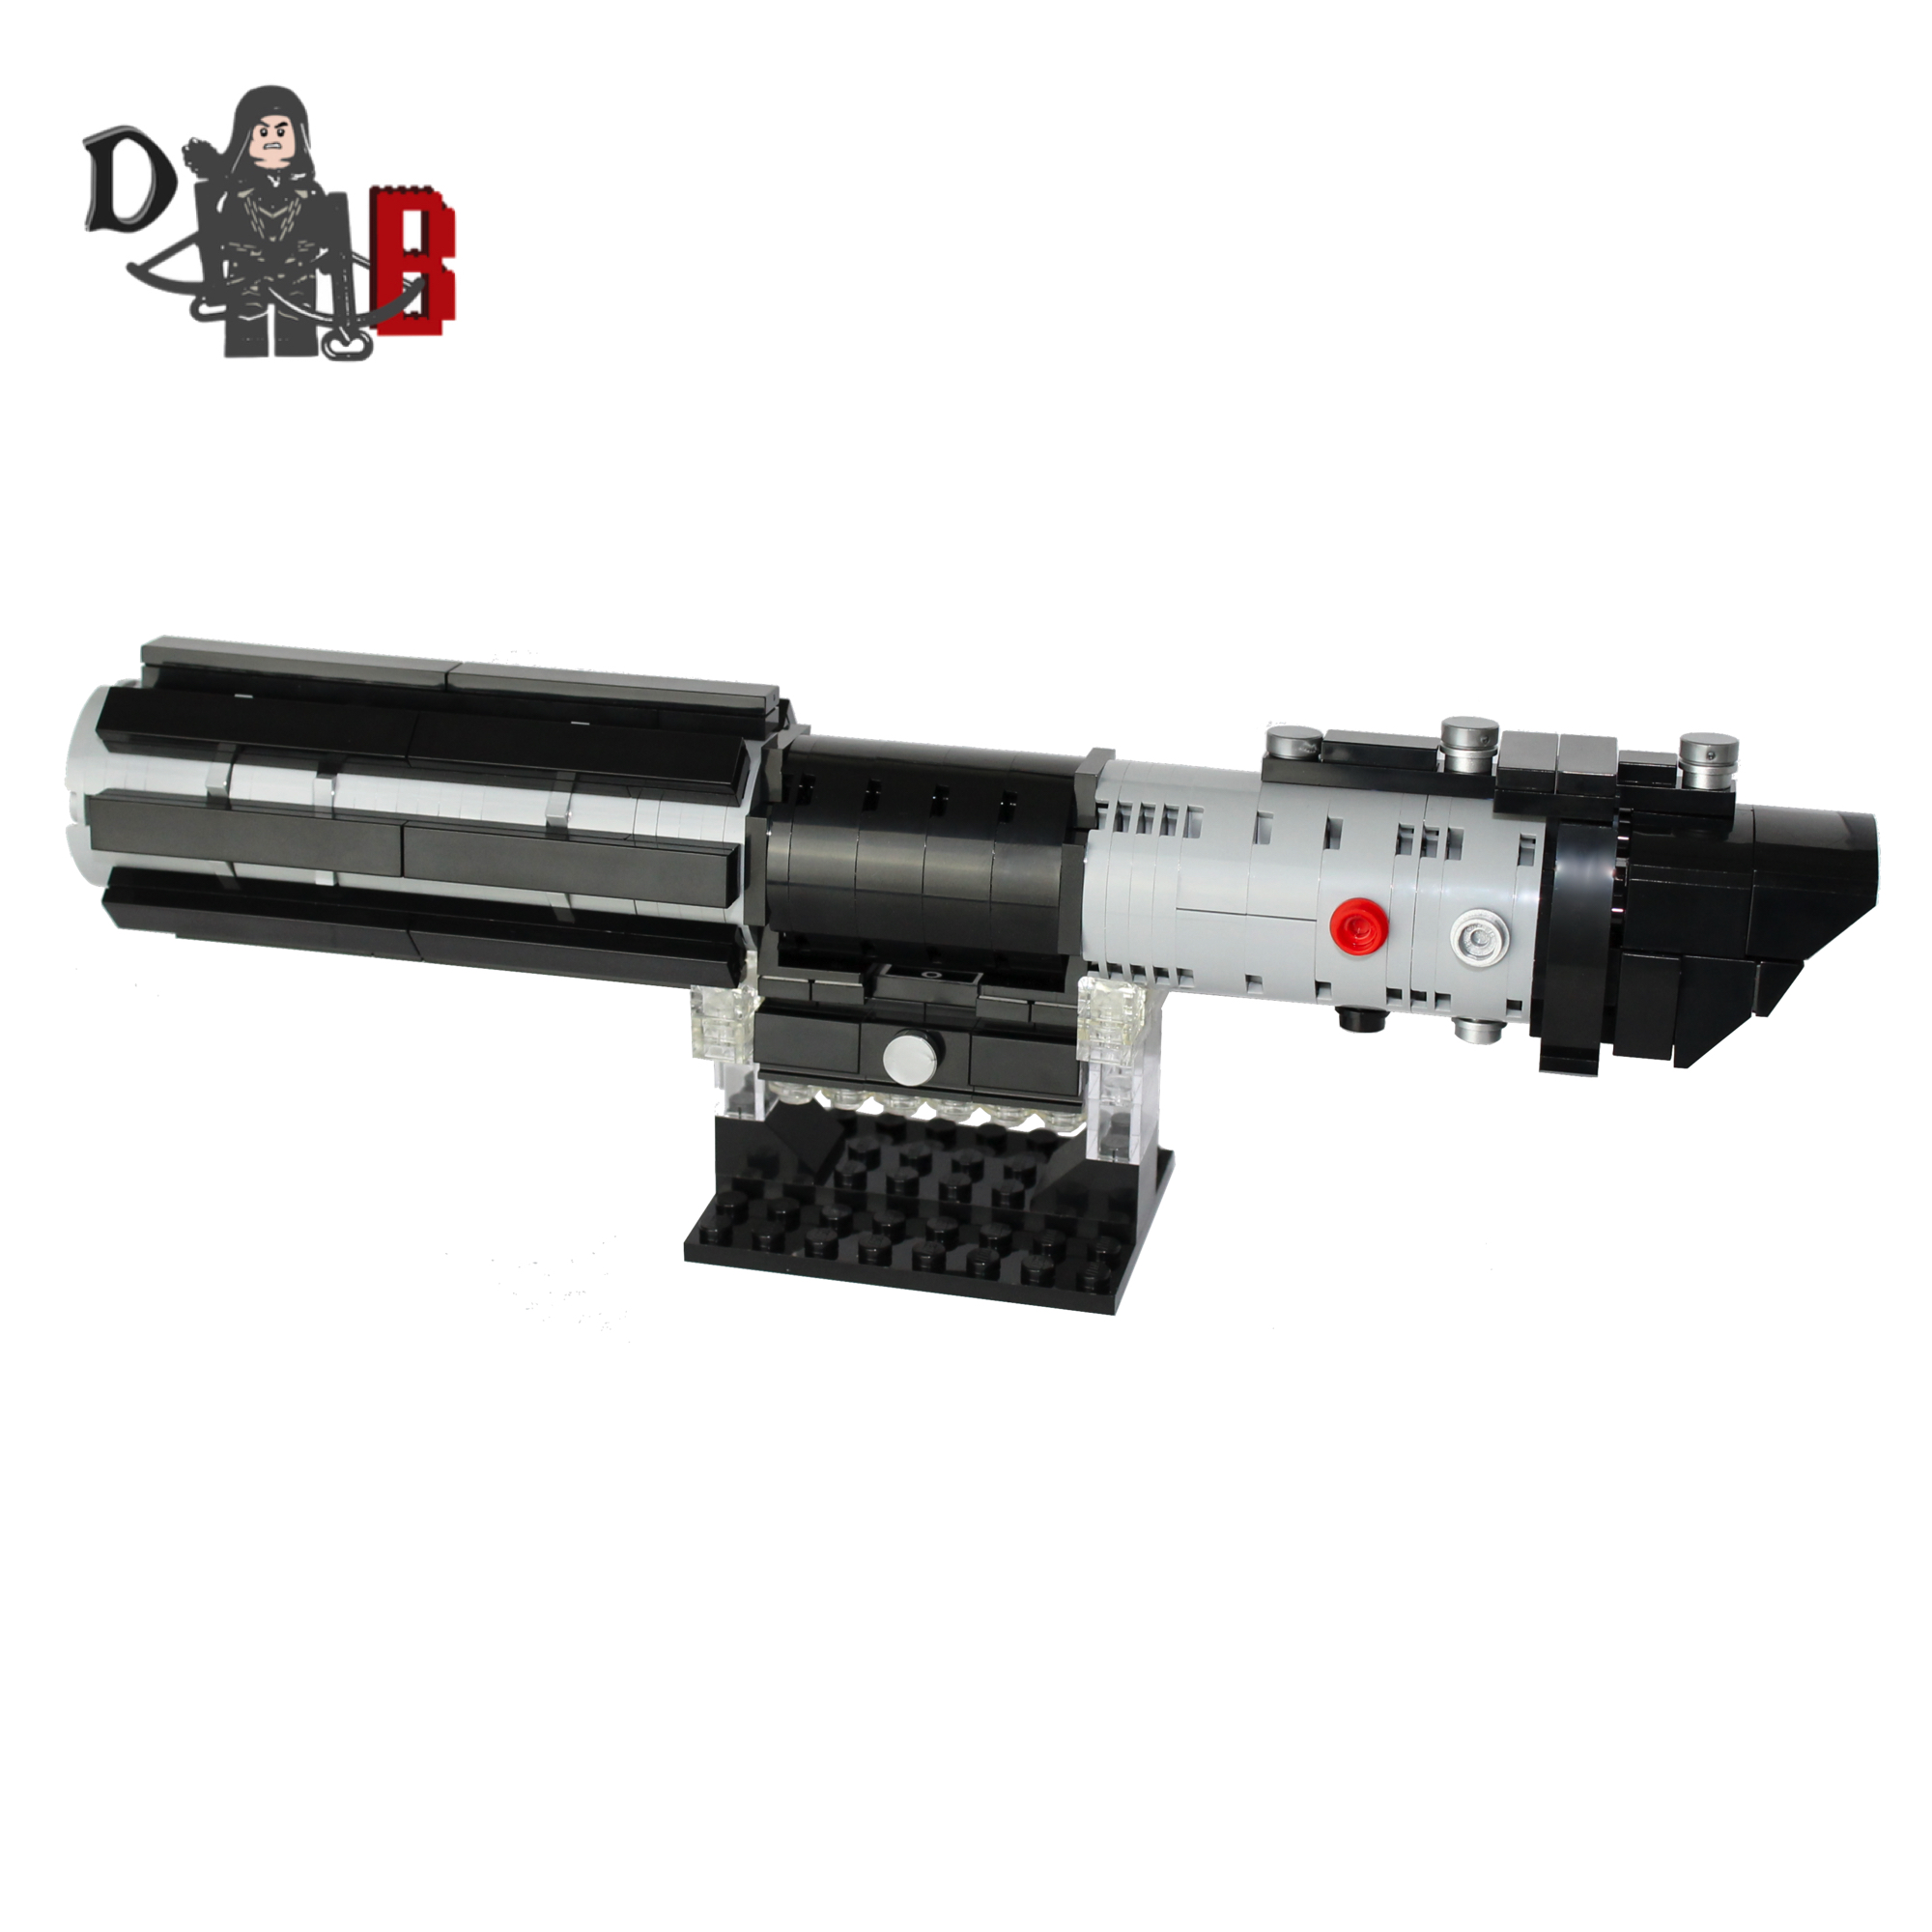 Darth Vader ESB Lightsaber – Demonhunter Bricks